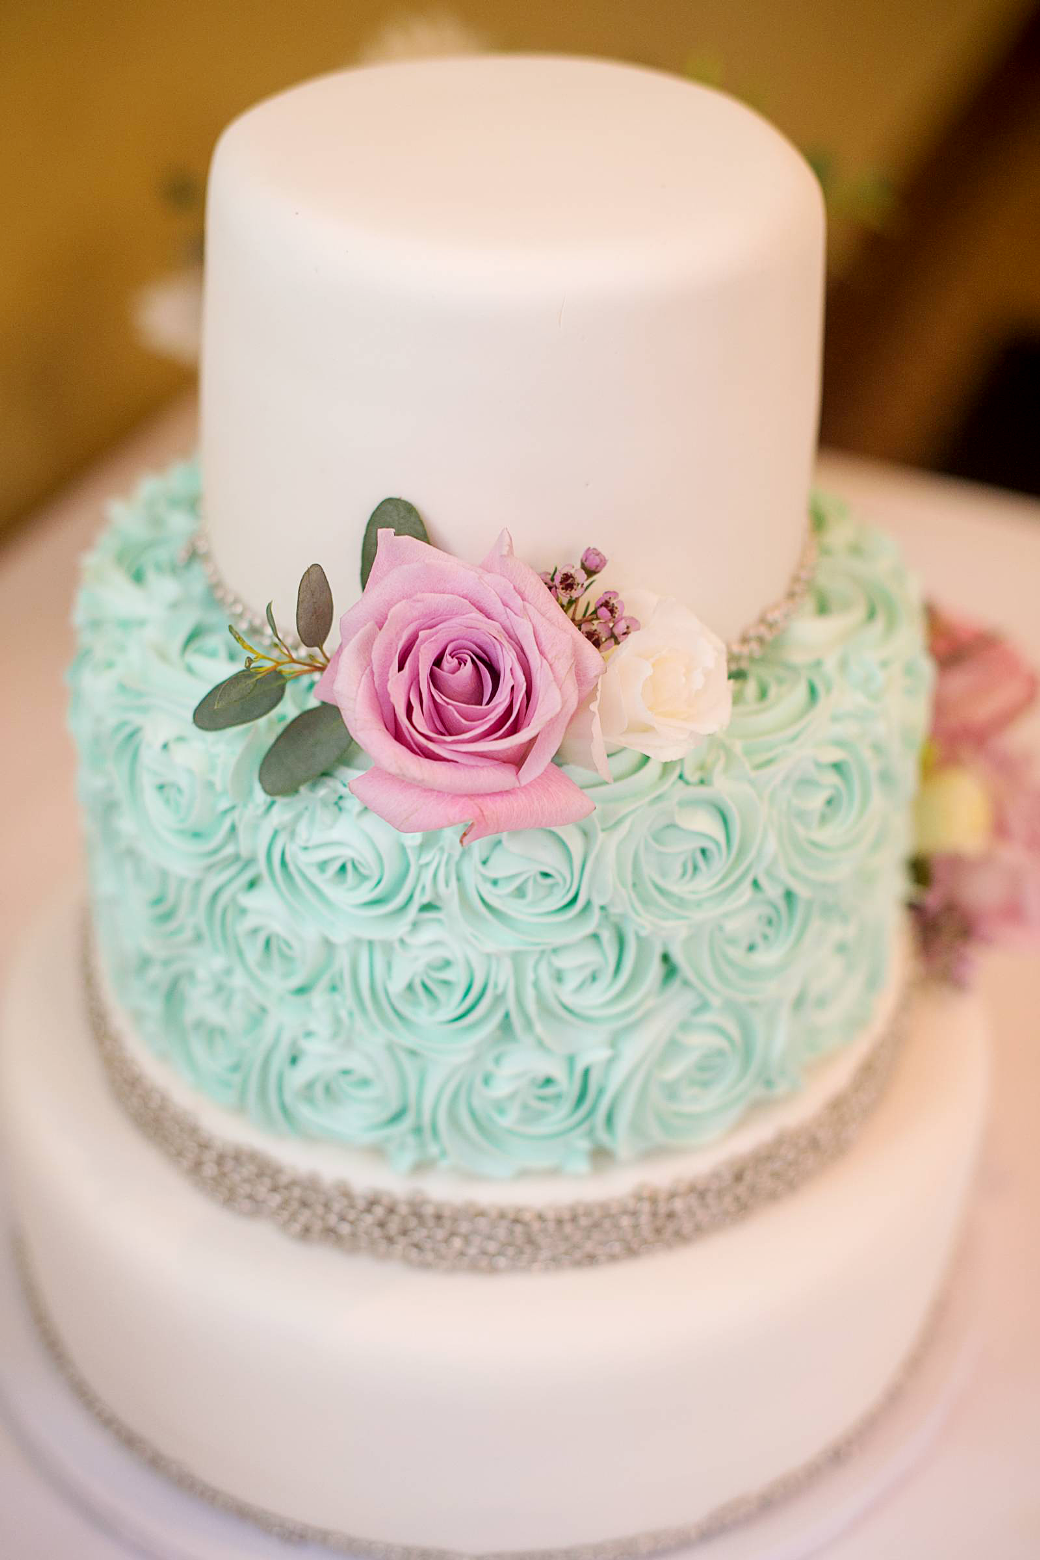 Whippt Desserts 2015 wedding cake